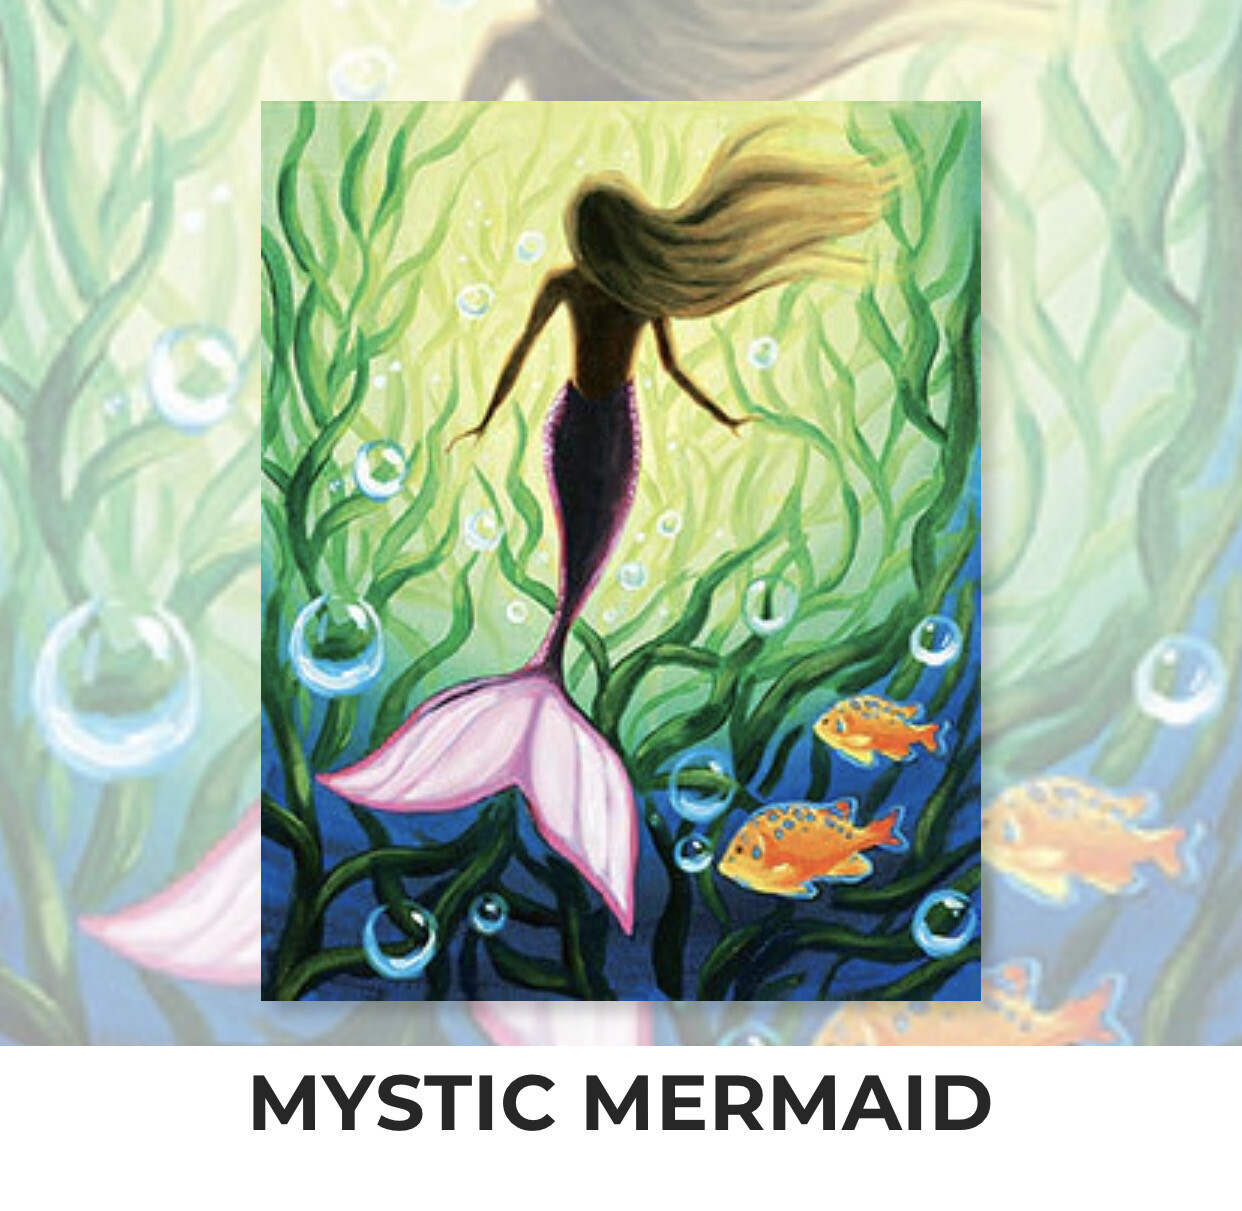 Mystic Mermaid ADULT Acrylic Paint On Canvas DIY Art Kit - 3 Week Special Order